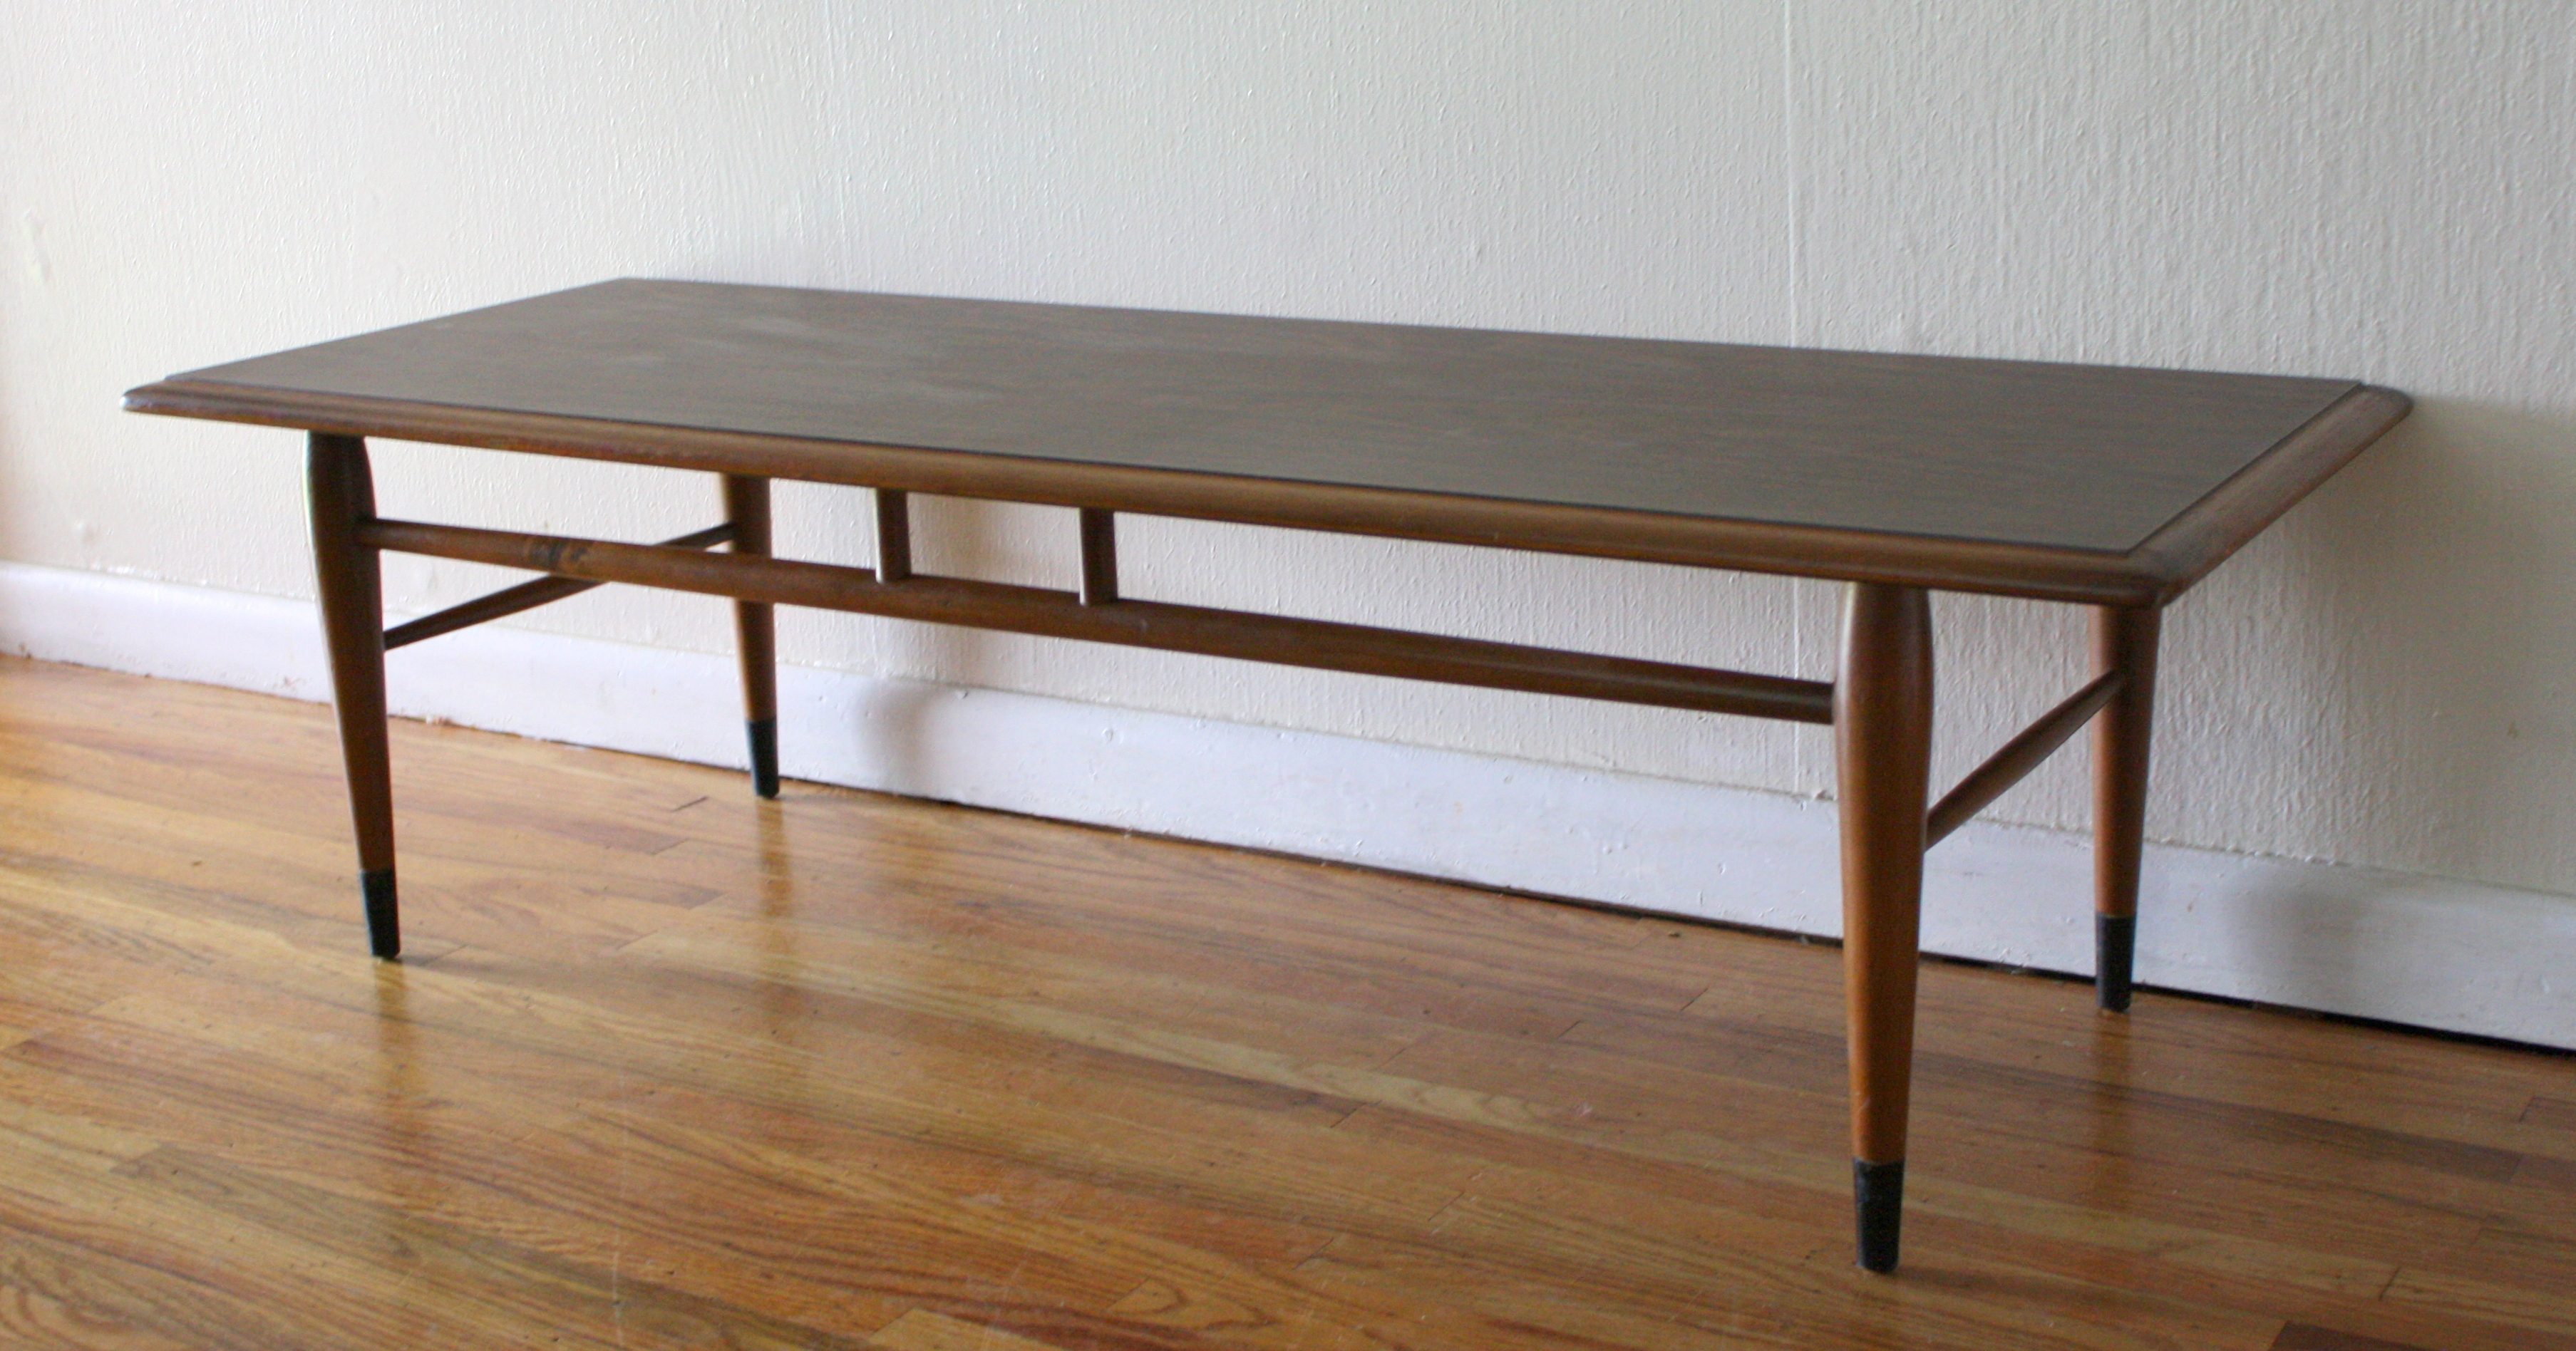 Mid century modern coffee table by lane picked vintage Formica coffee table